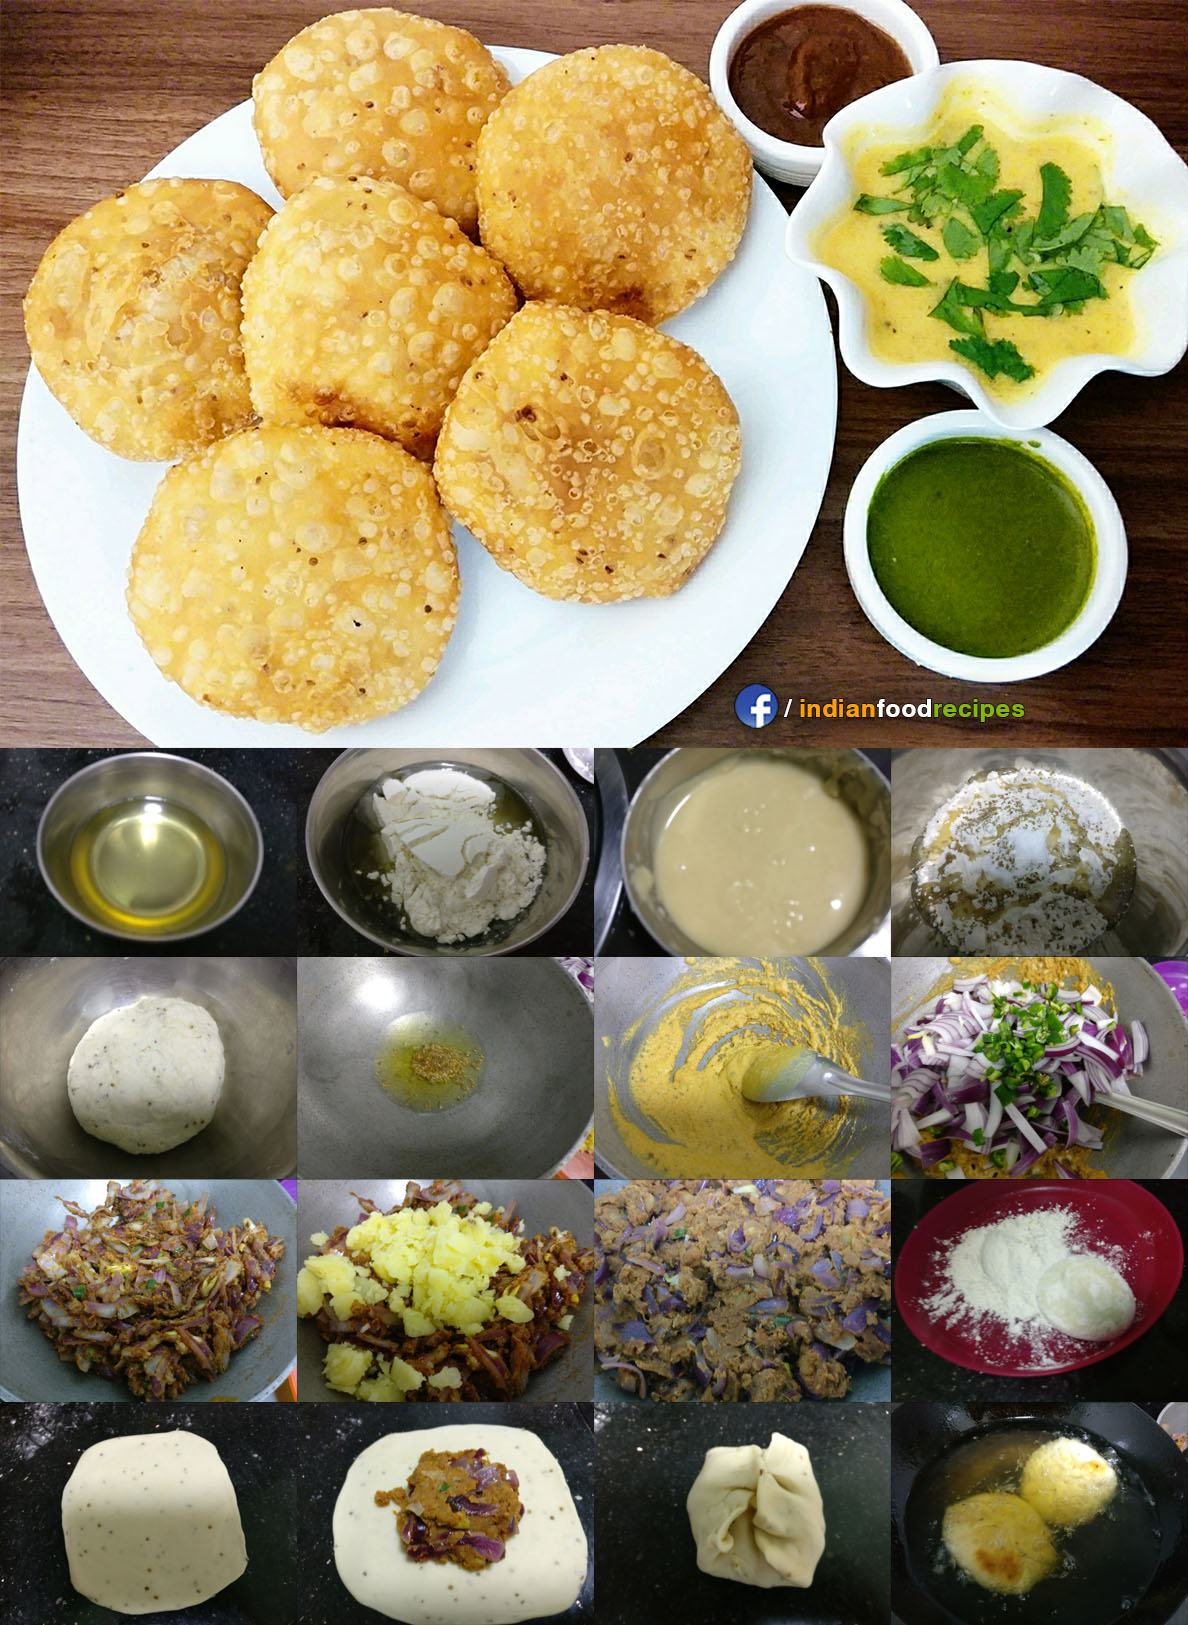 Aloo Pyaaz ki Kachori (Potato Kachori) recipe step by step